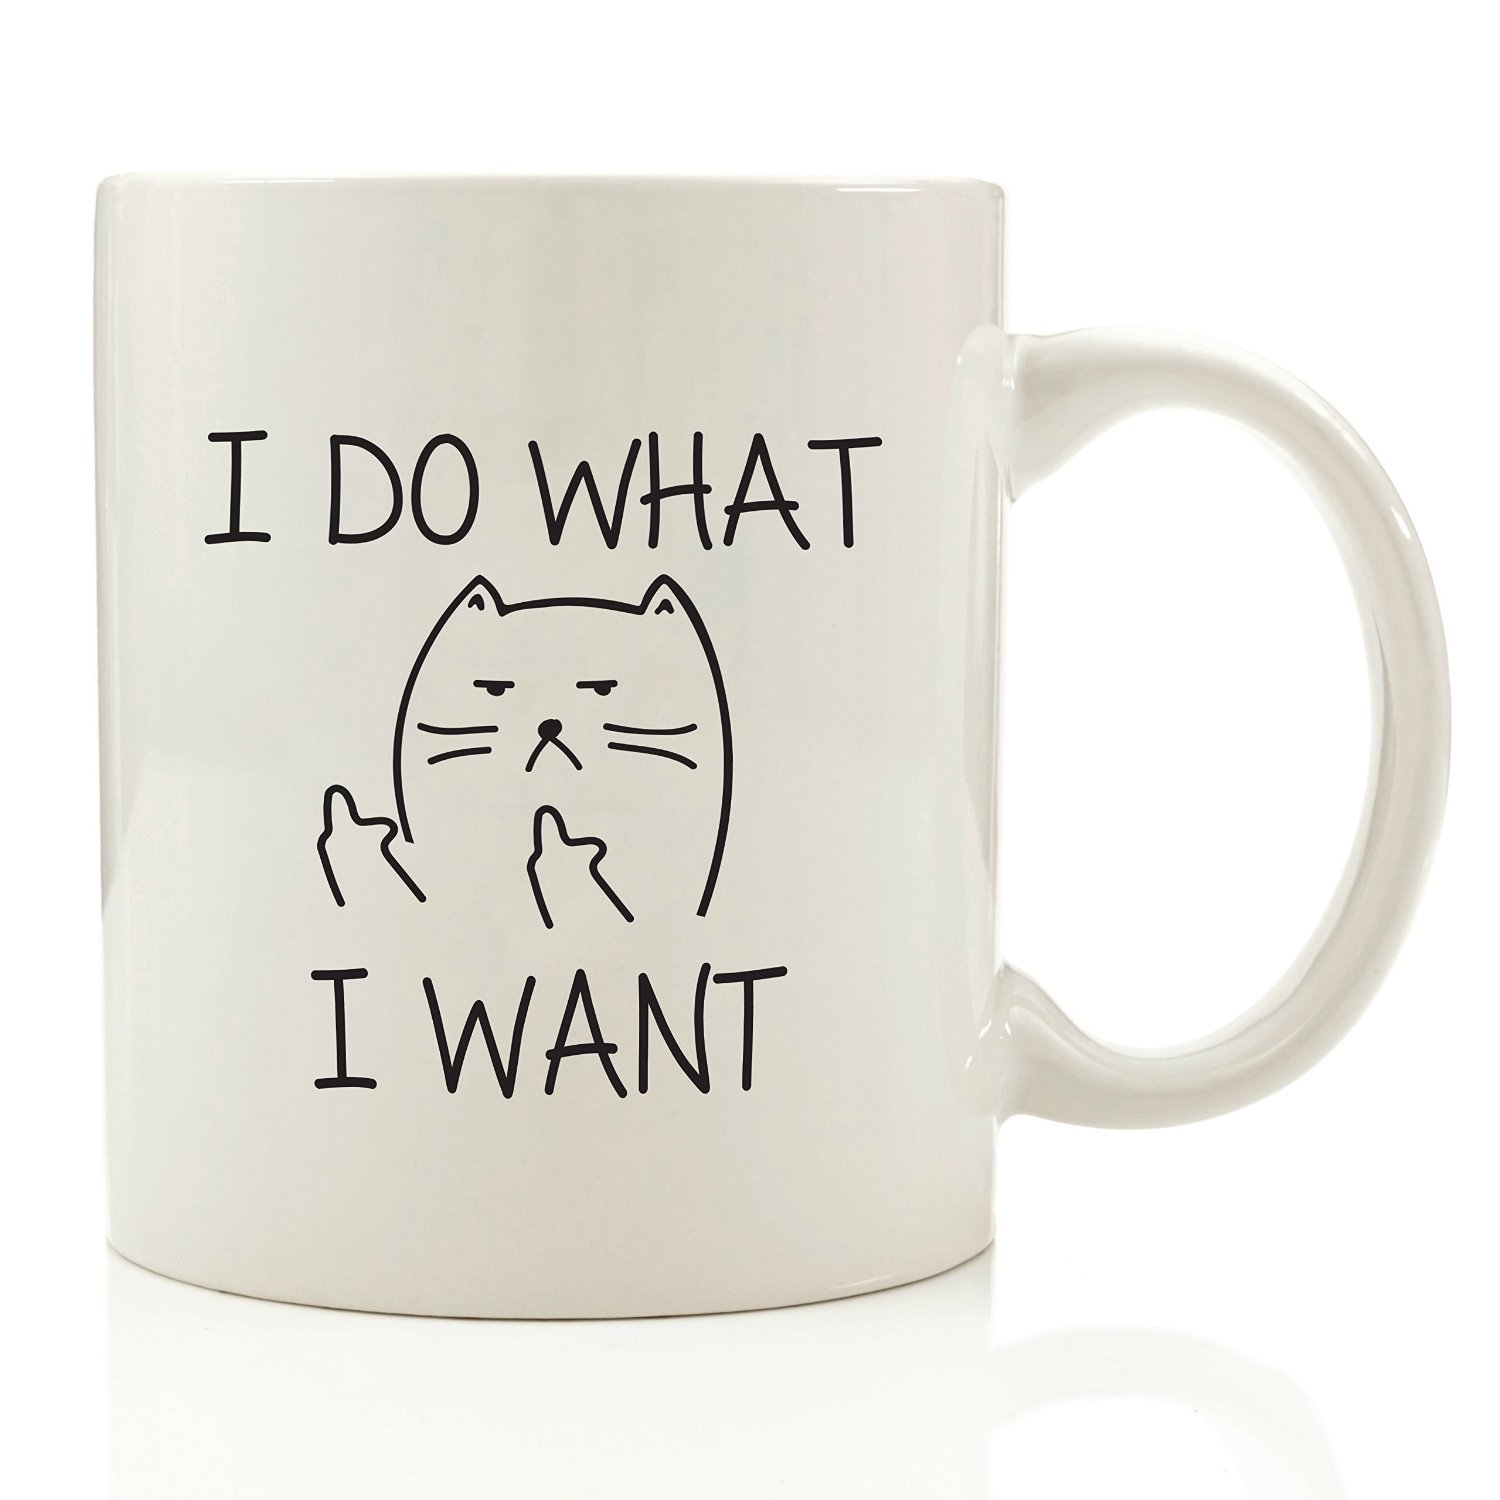 Coffee cups funny - I Do What I Want Funny Coffee Mug Cat Middle Finger 330 Ml Birthday Gift For Men Women Him Or Her Best Office Cup Christmas Present Idea For